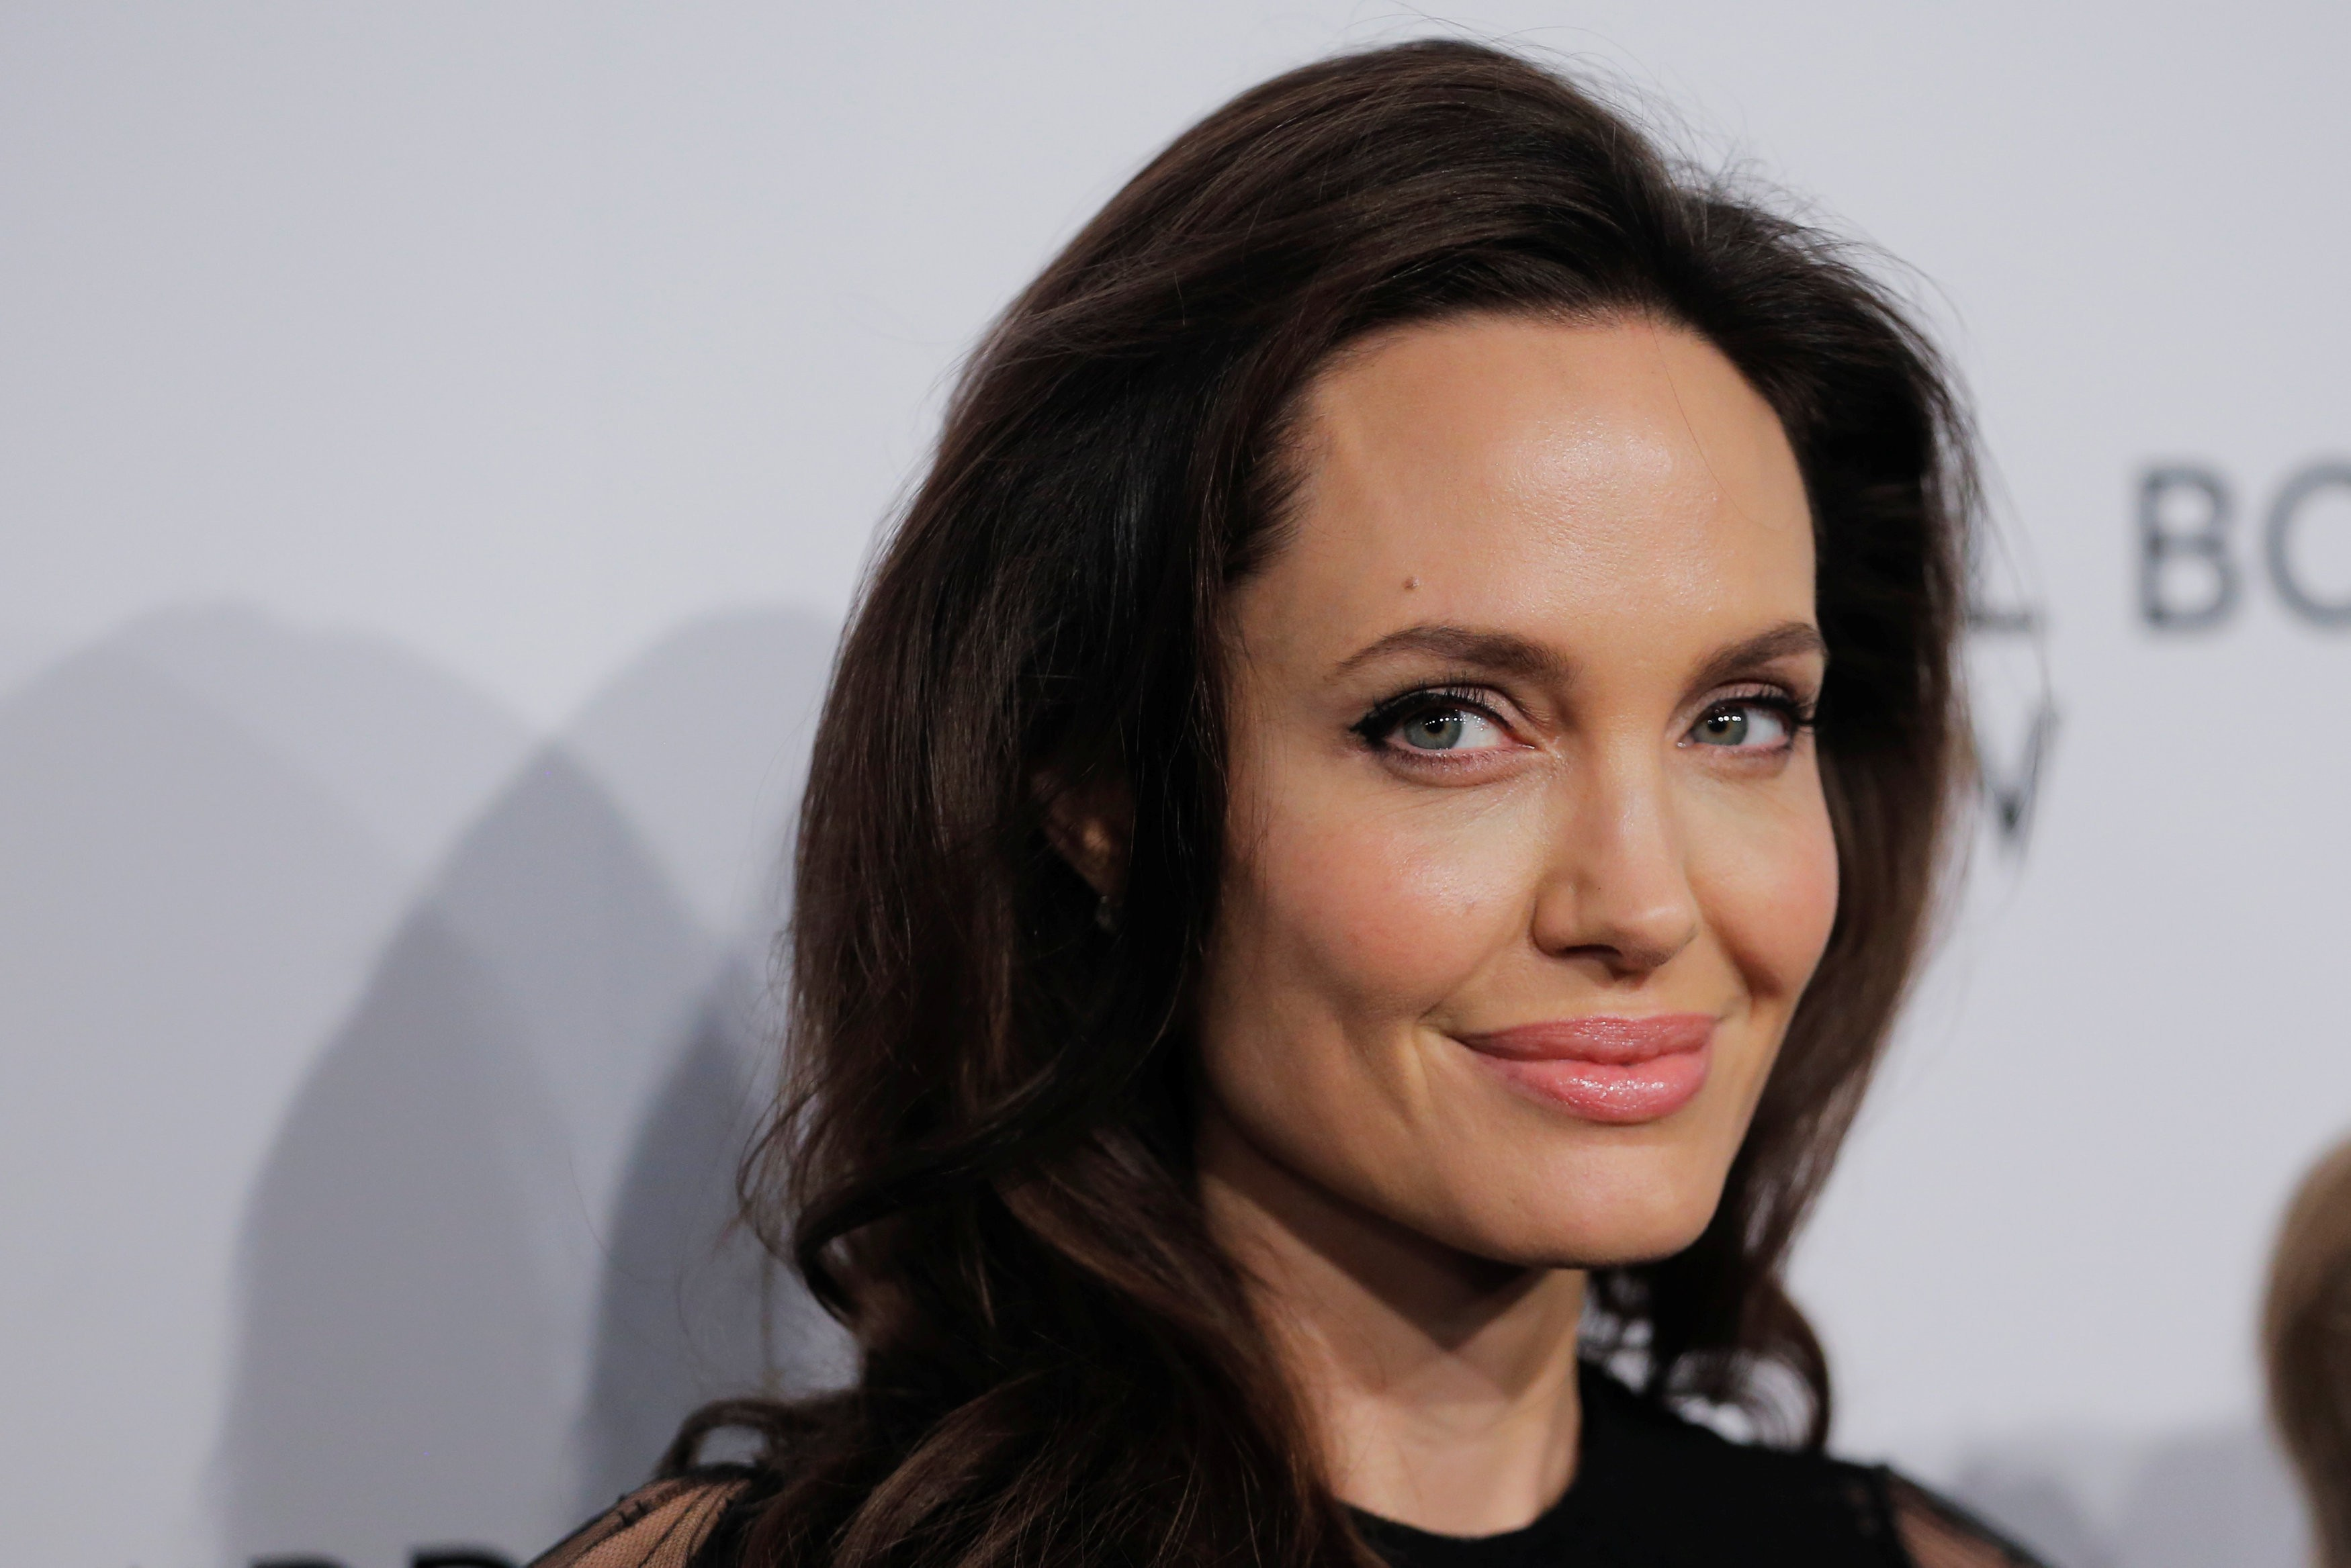 Angelina Jolie And 4 Other Celebrities Who Have Shared Their